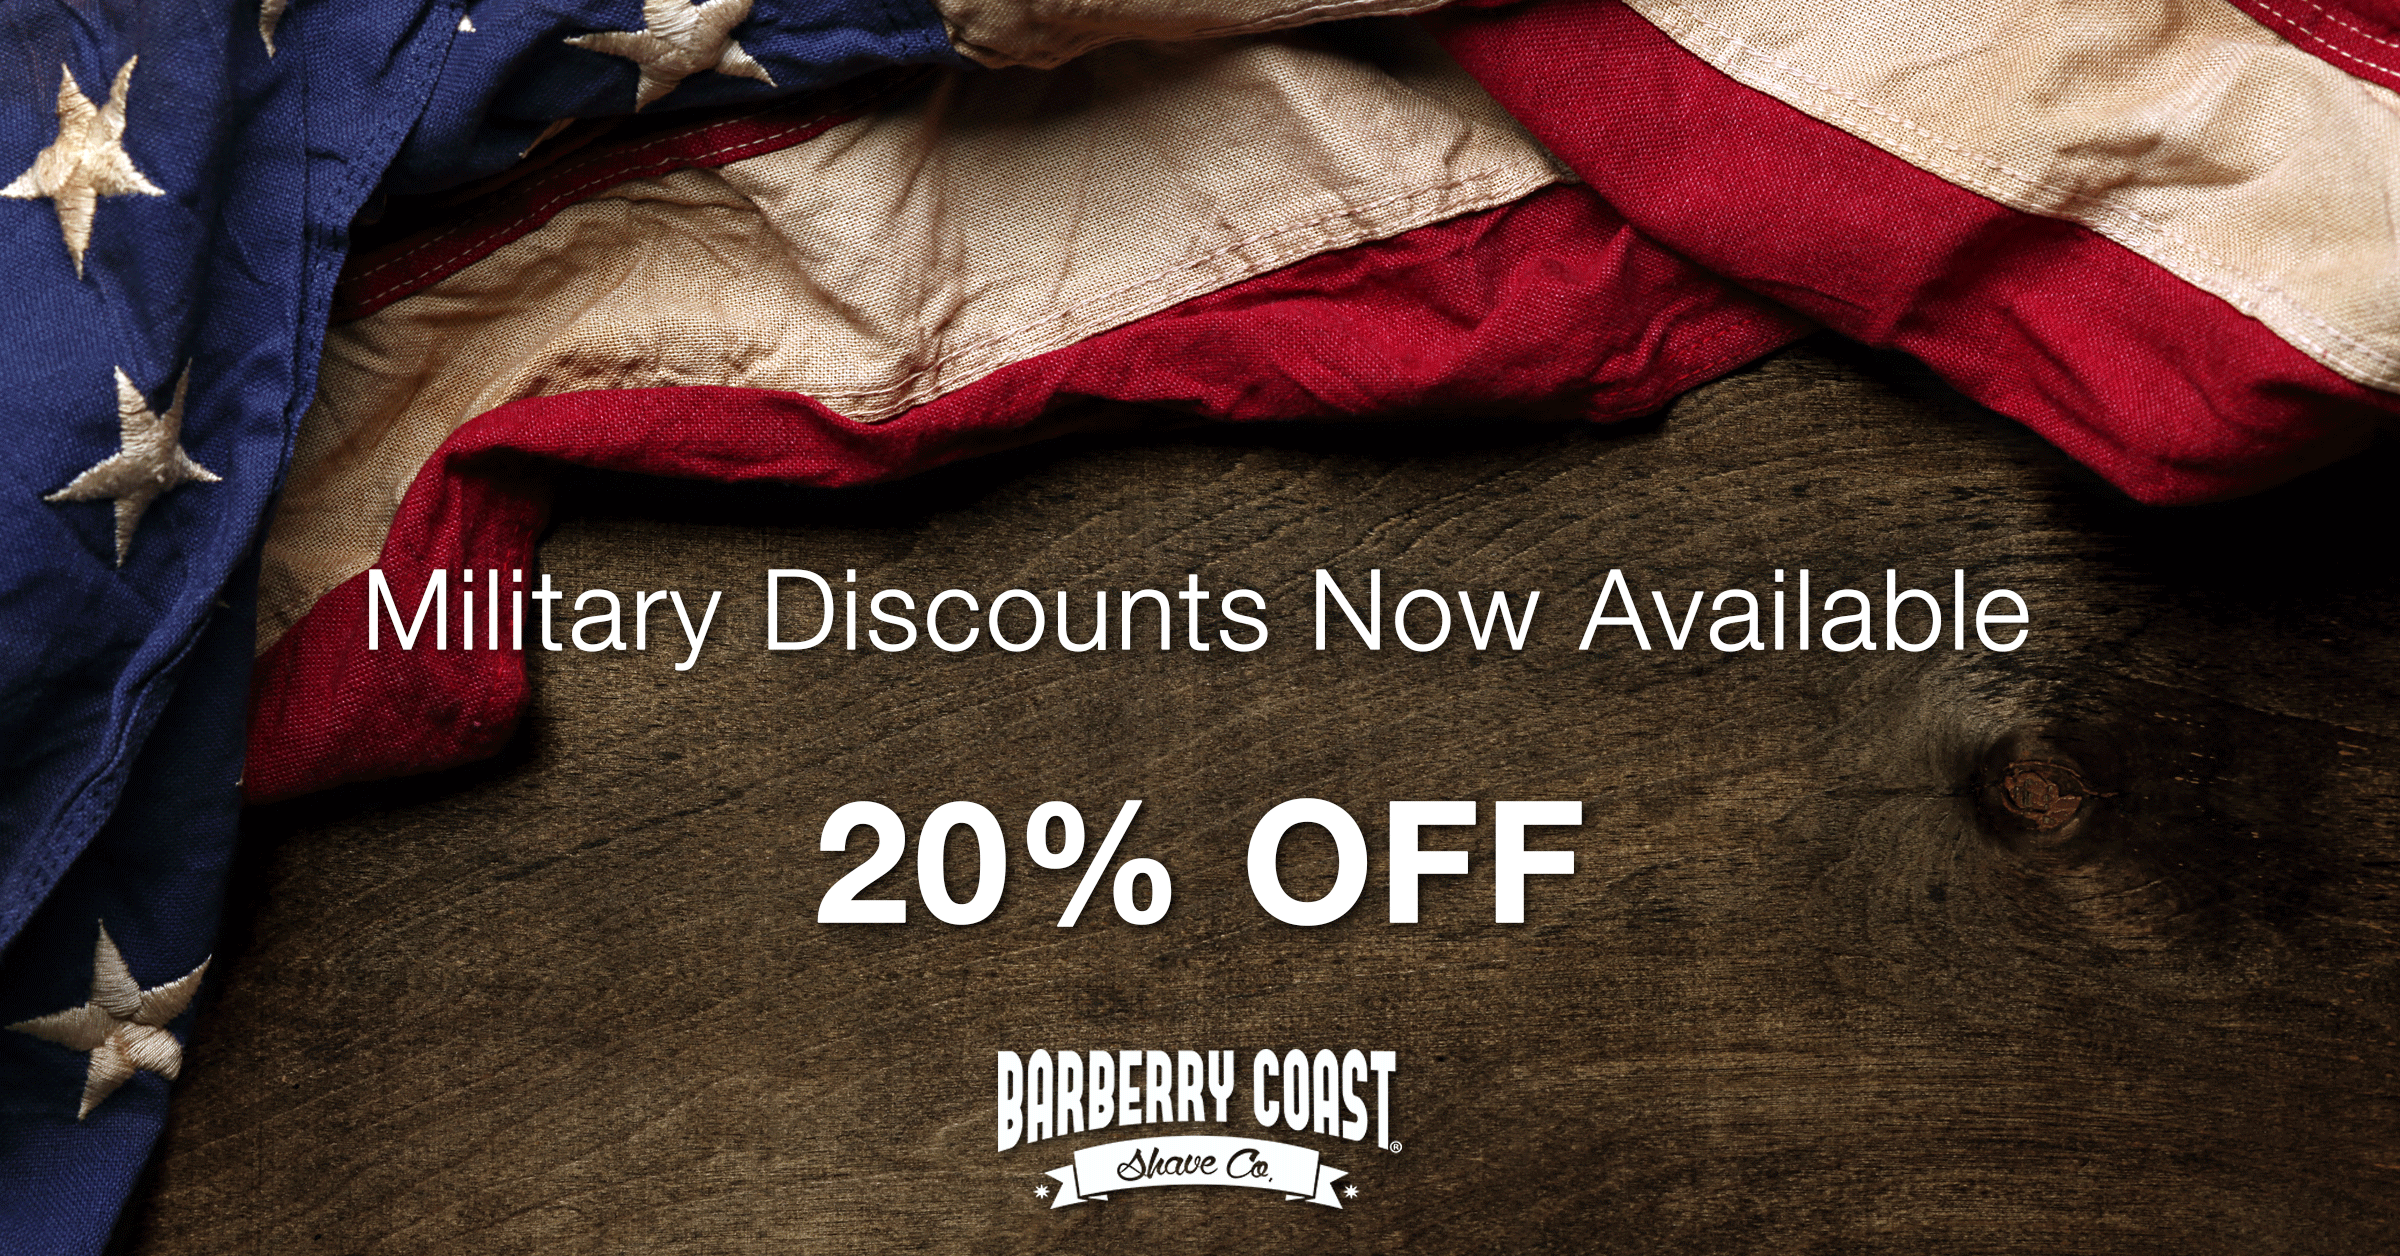 Military Discounts Now Available!